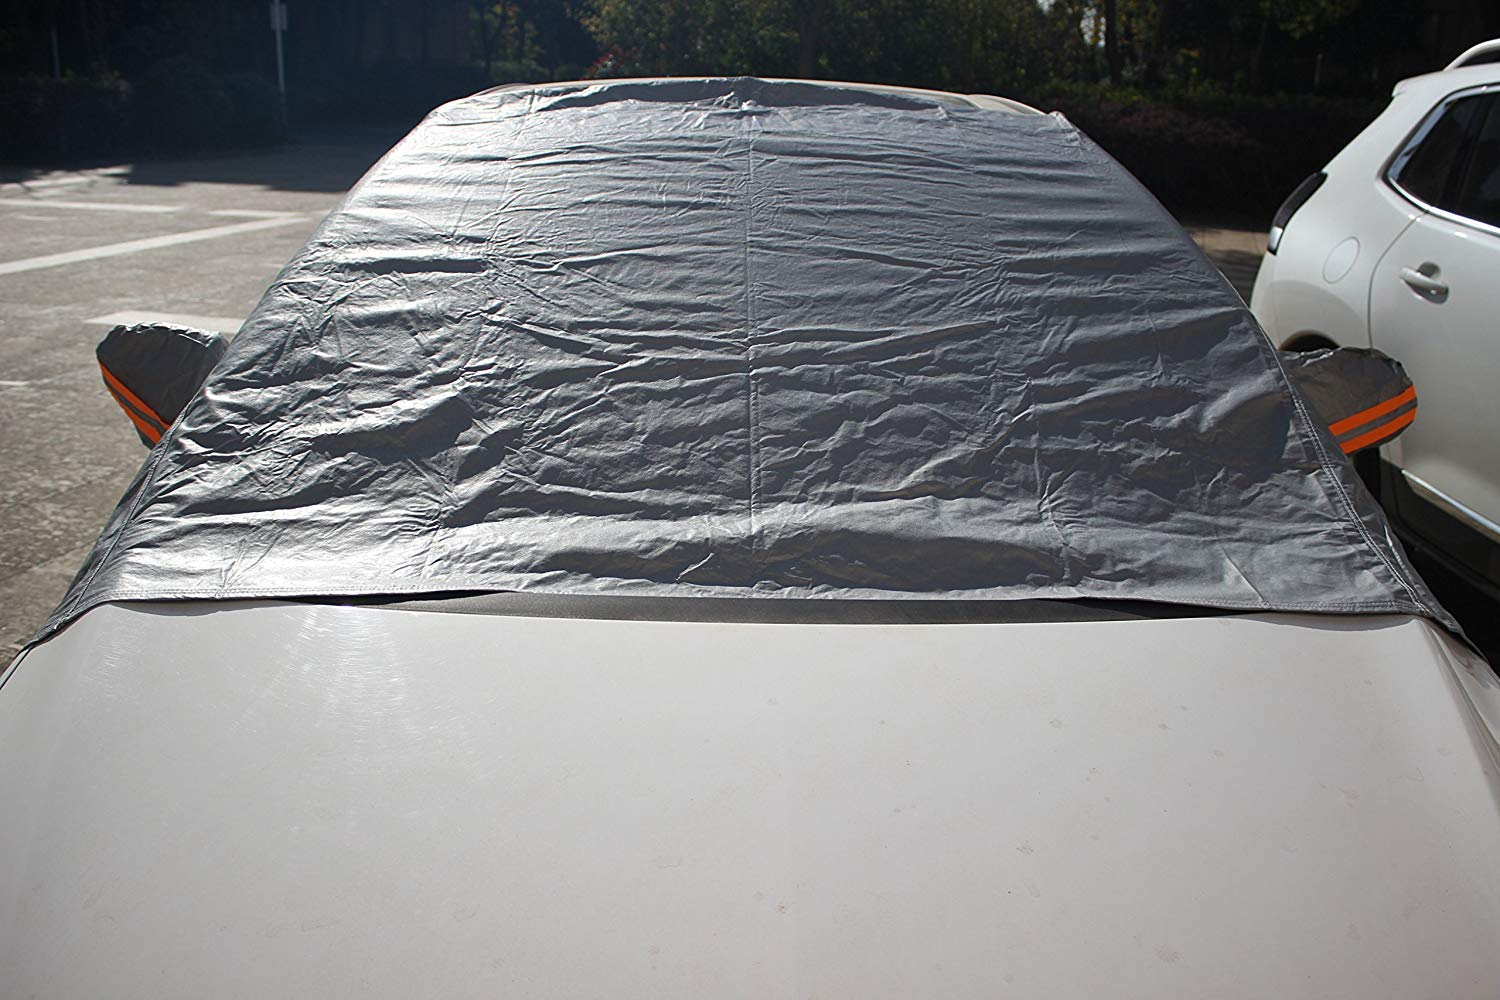 imUfer Universal Thickening Front Windscreen Cover with Ears Protect from Sun Snow Dust Rain Frost in All Weather